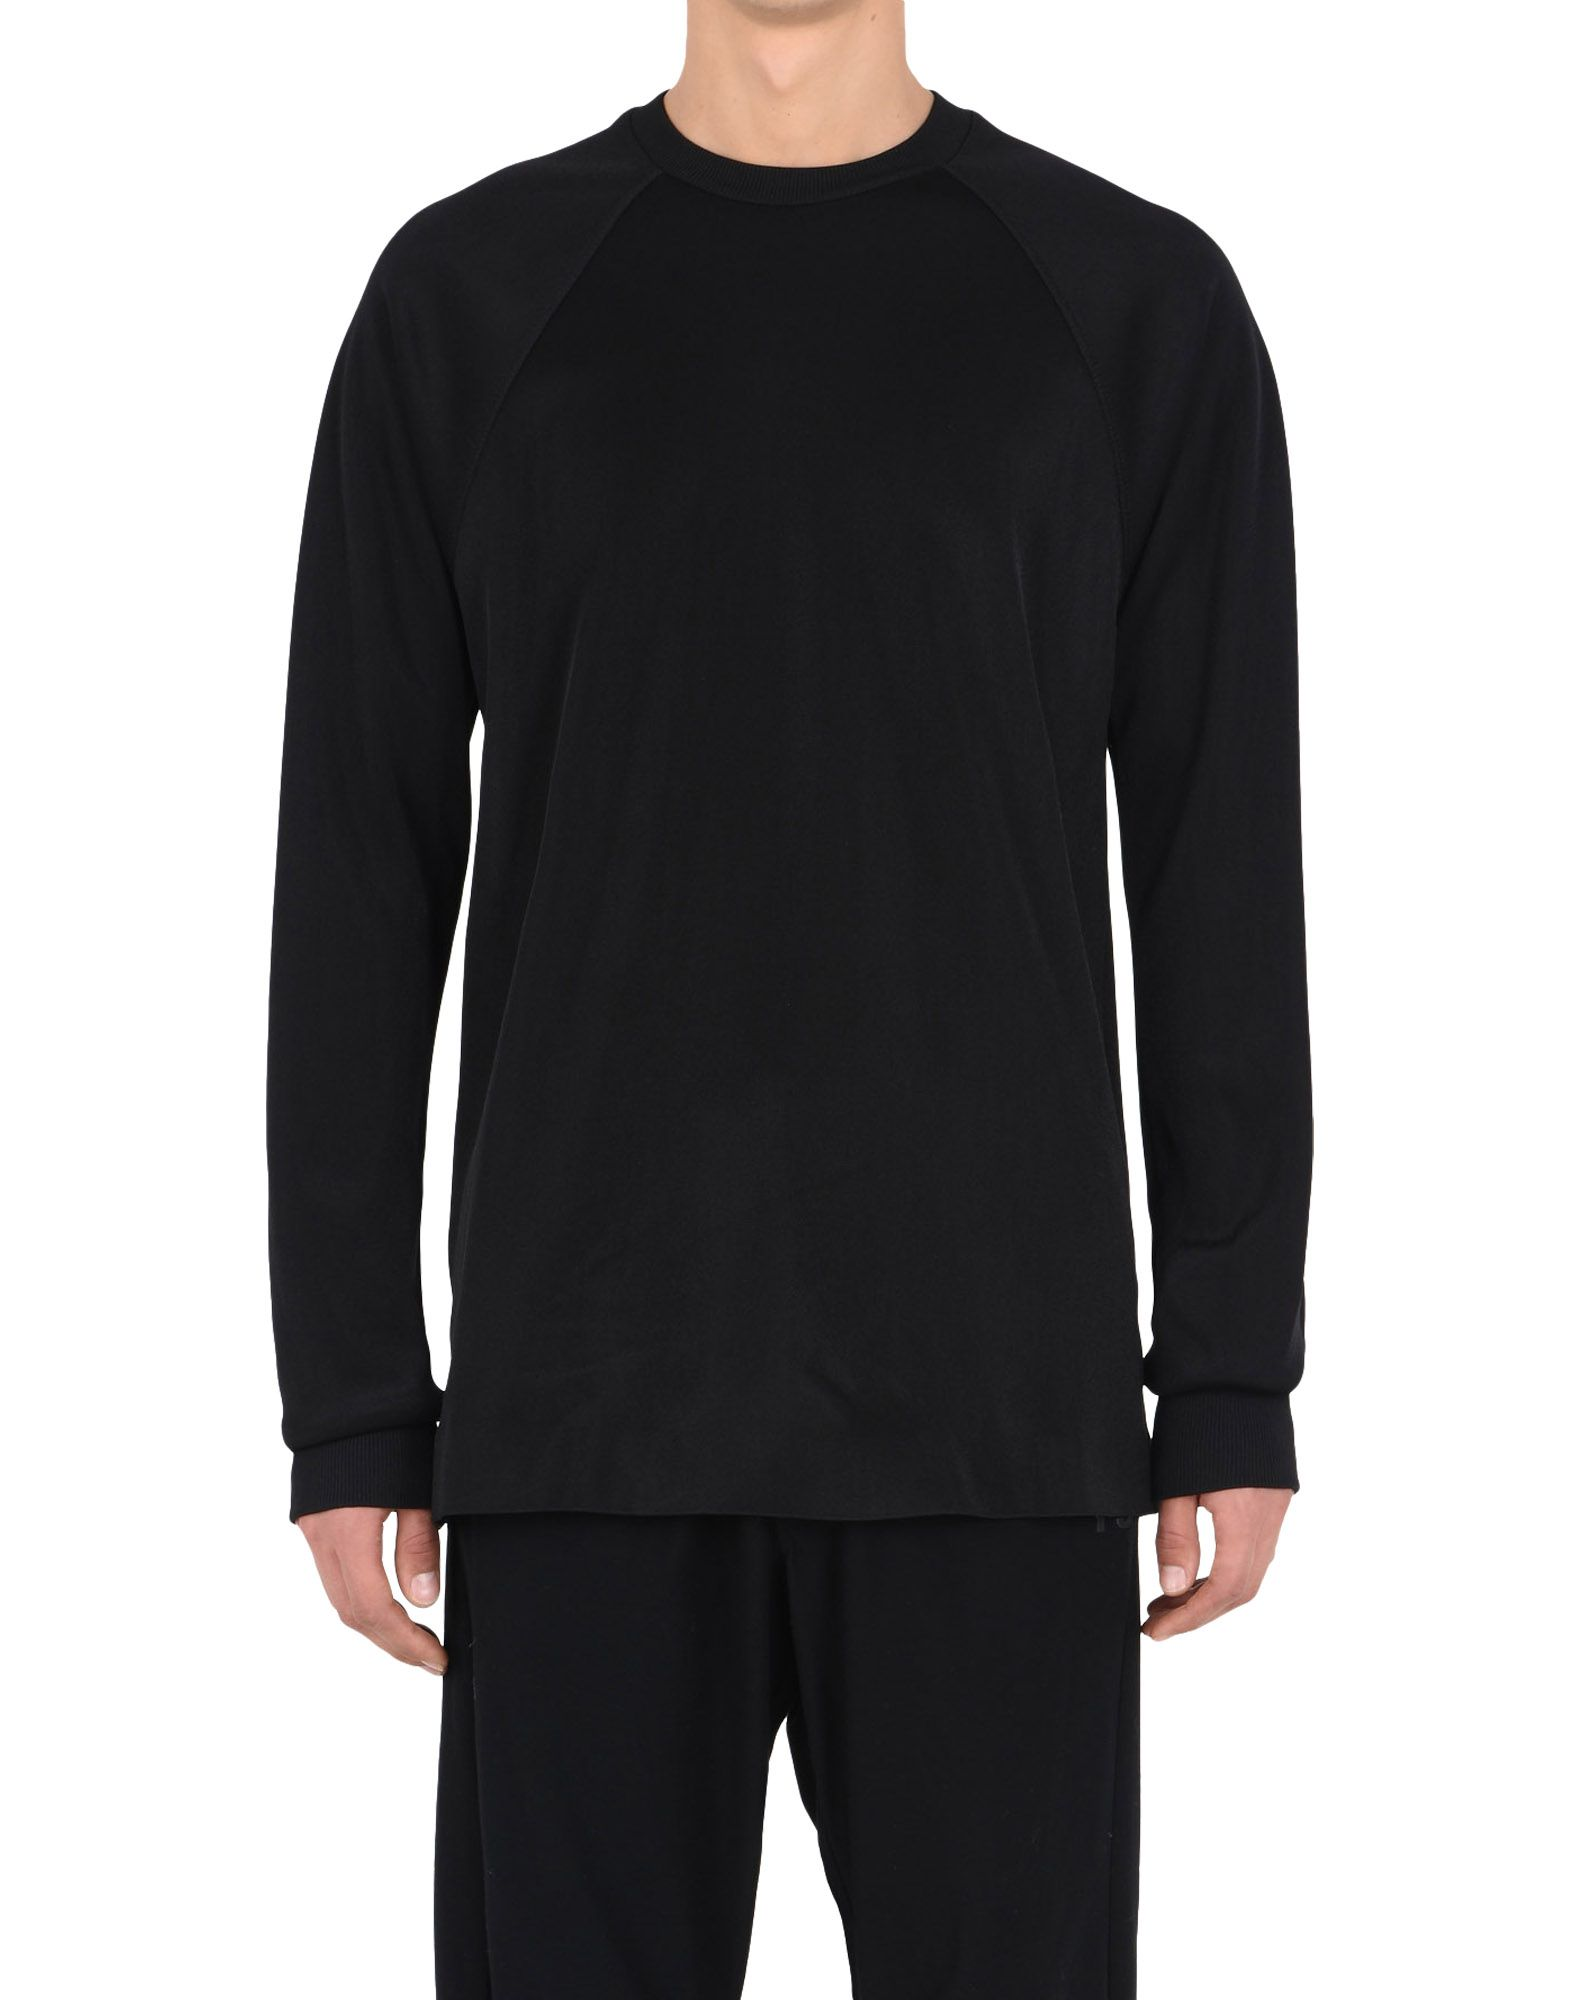 Y-3 Y-3 SPACER MESH SWEATER Sweatshirt Man r